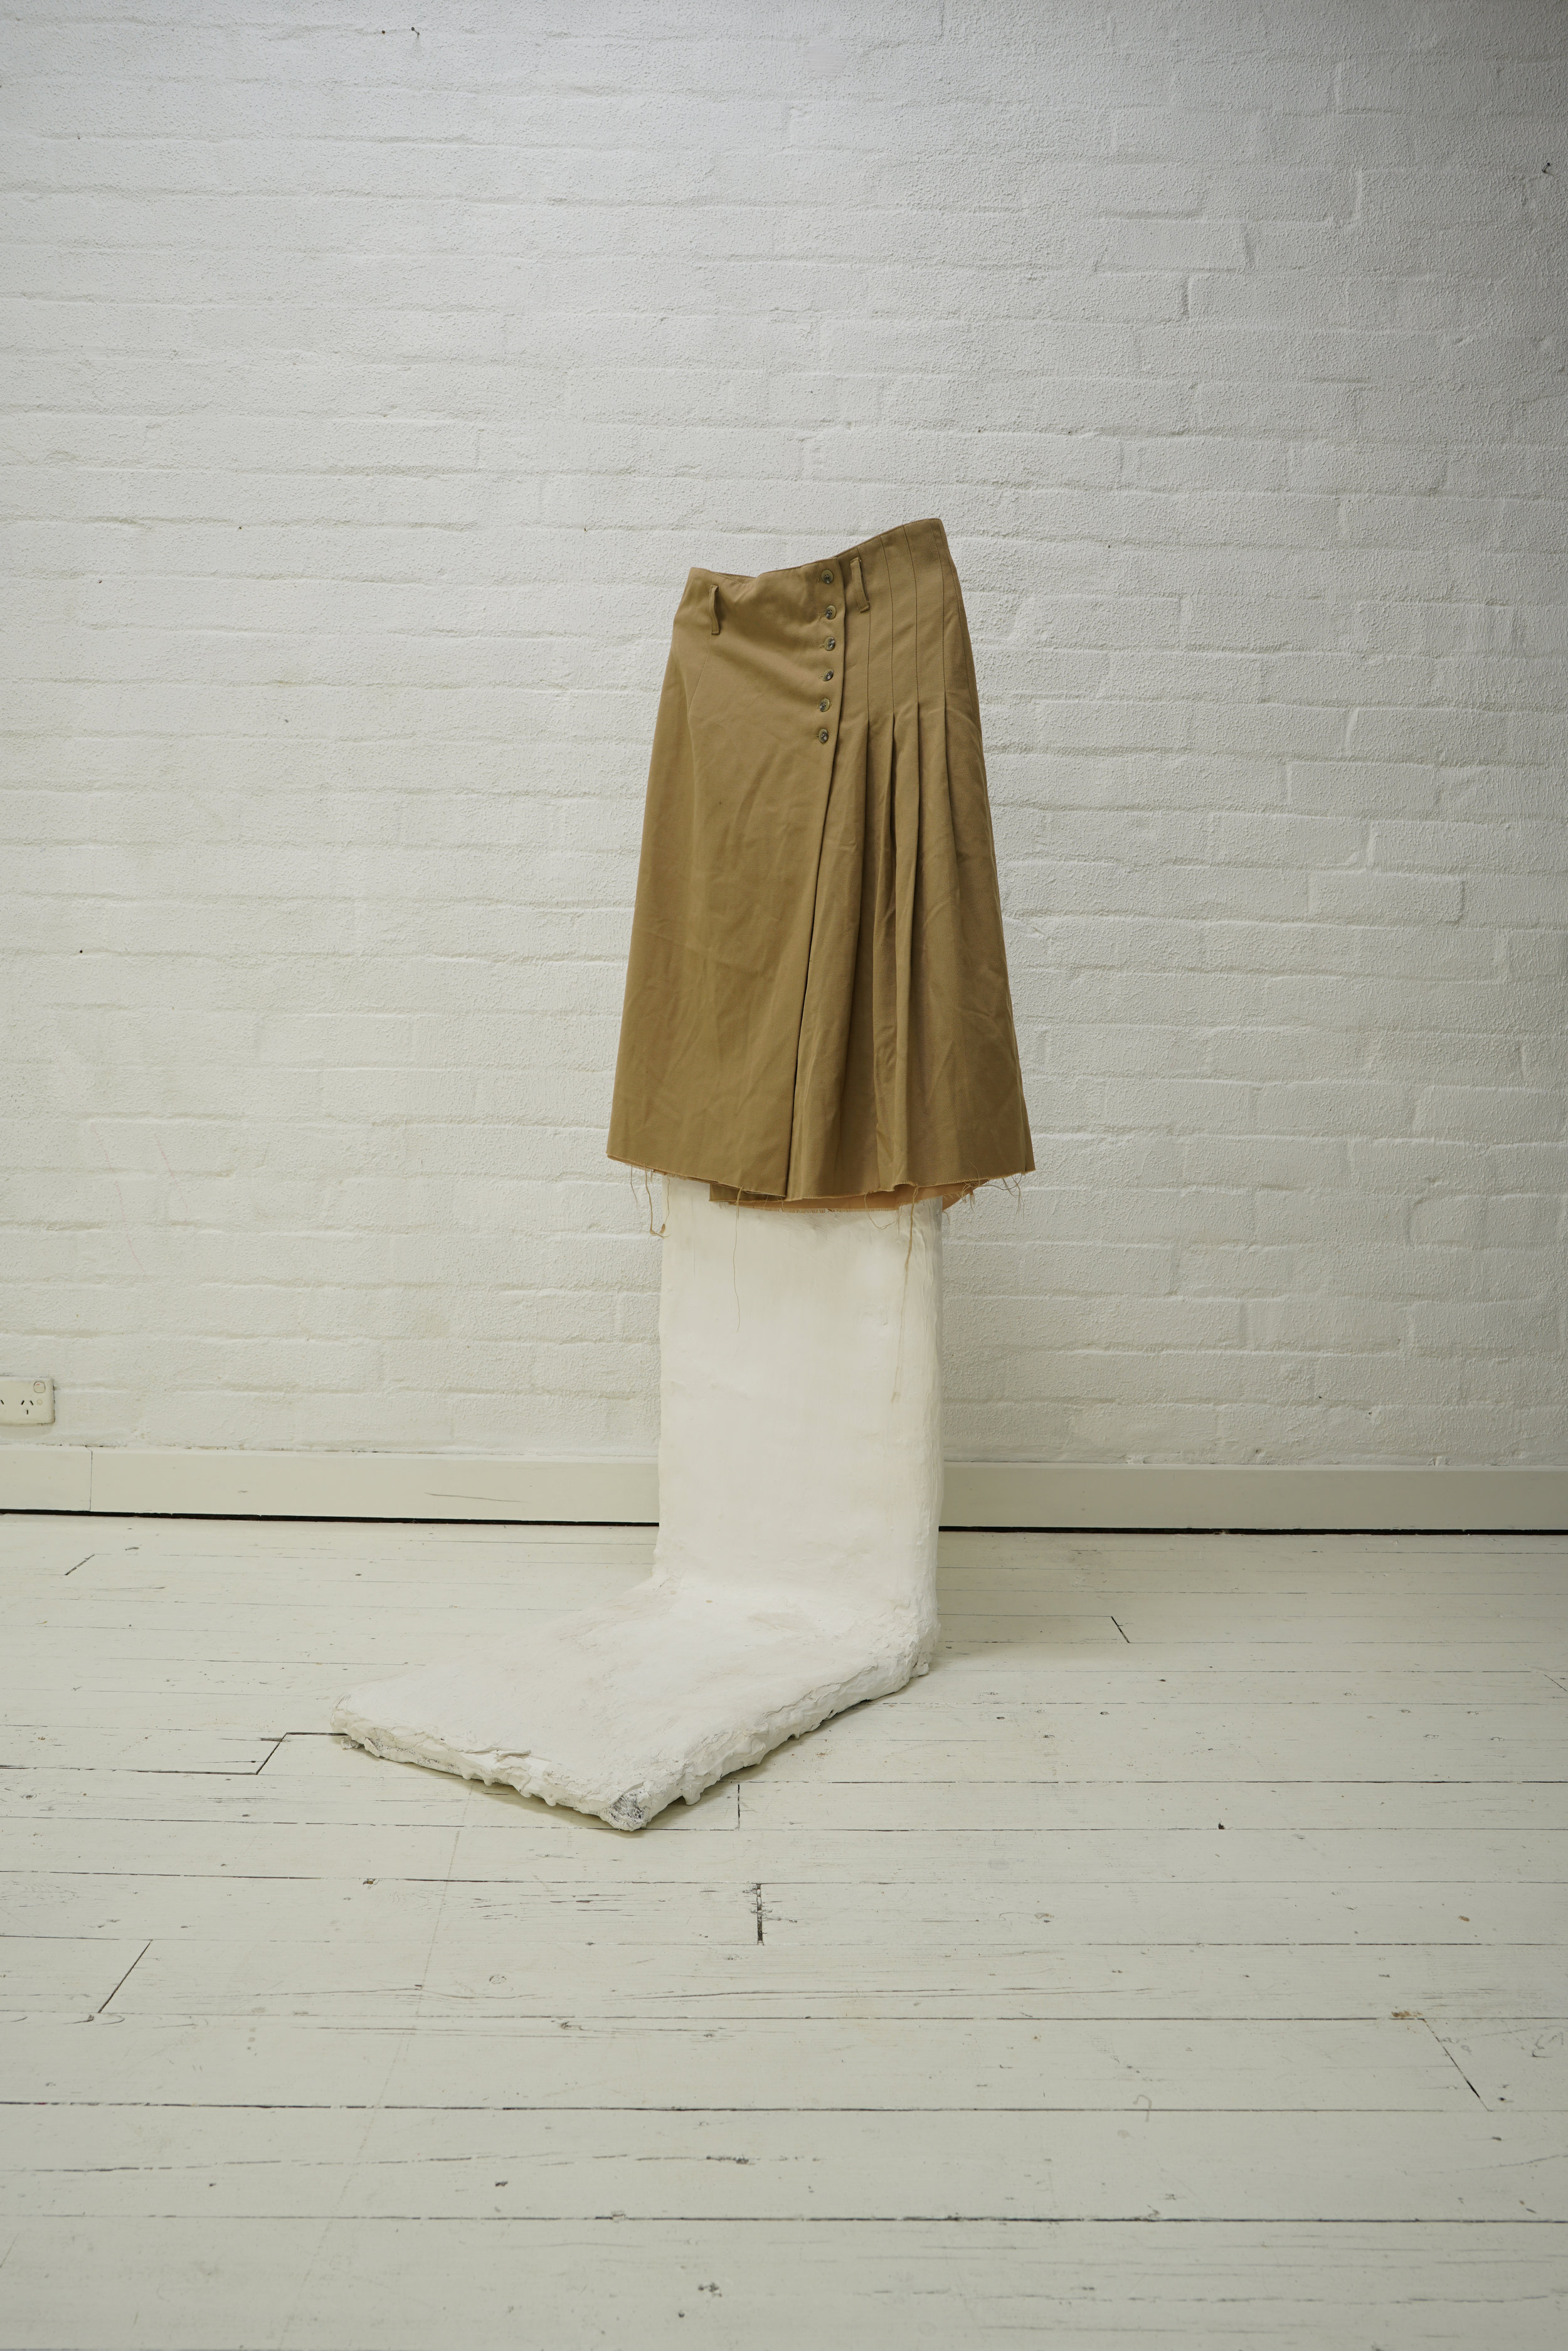 raw edge lined pleated skirt from a flat finds